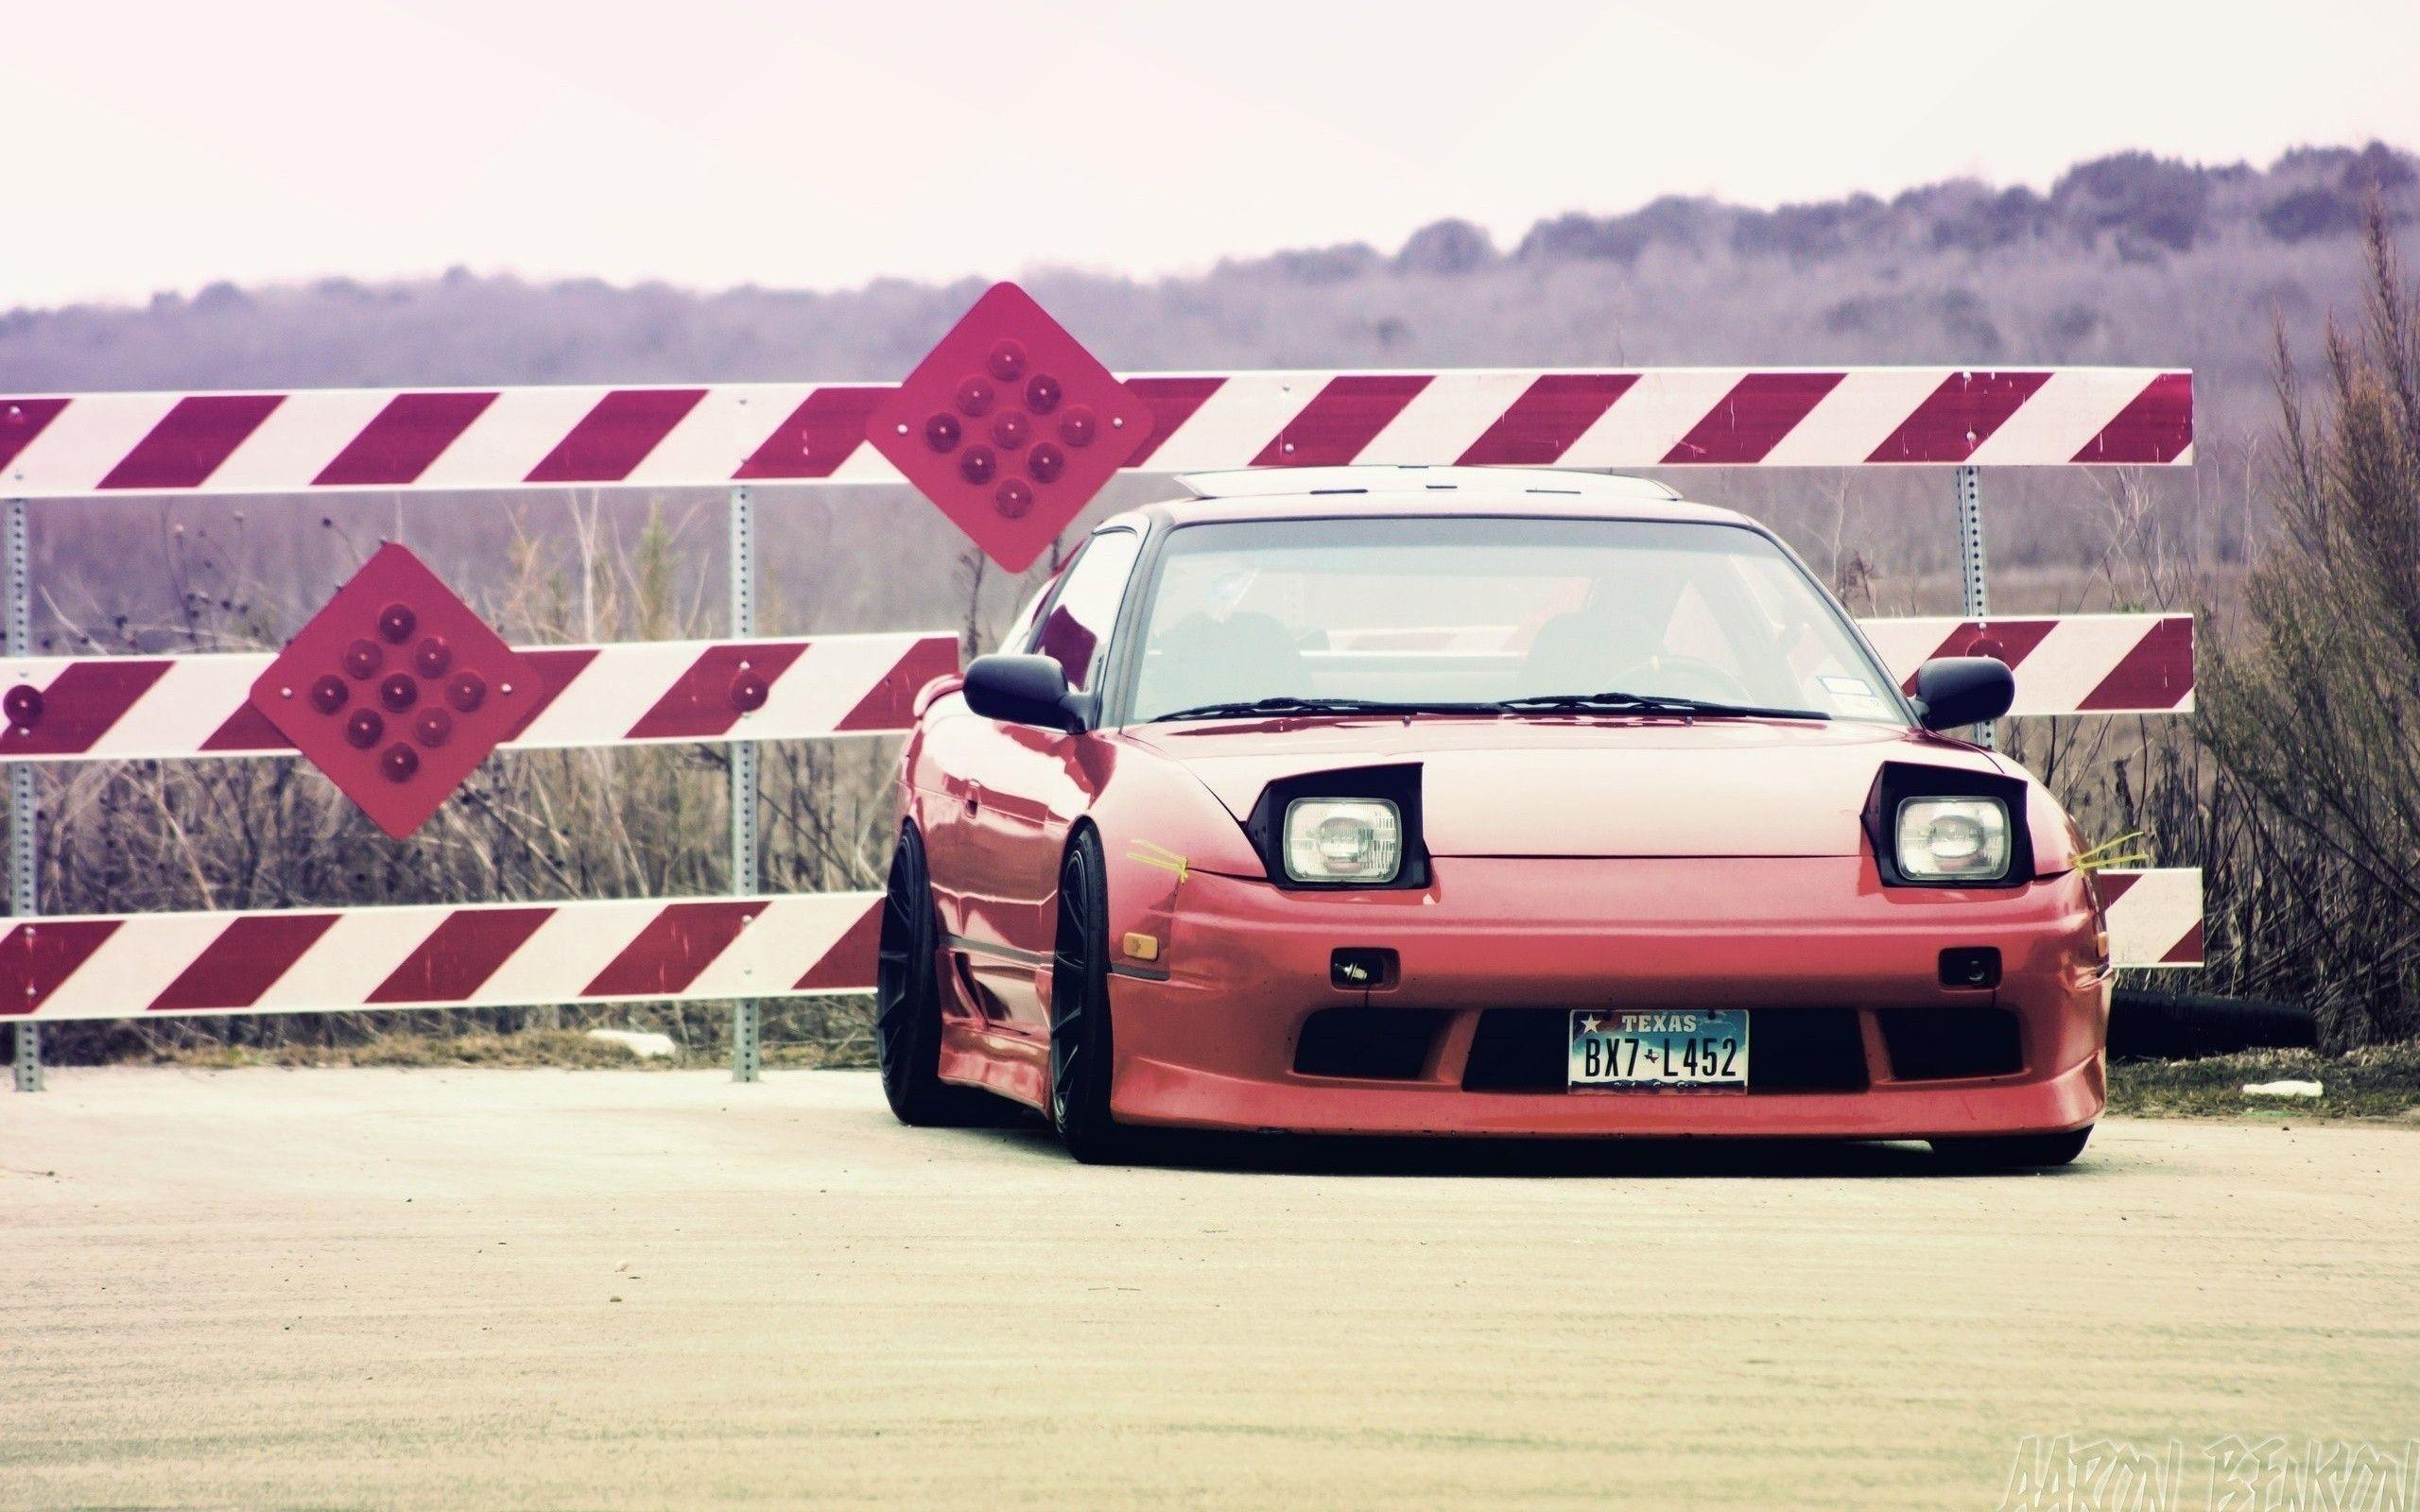 240sx Iphone Wallpaper Nissan 180sx Jdm 2560x1600 Download Hd Wallpaper Wallpapertip